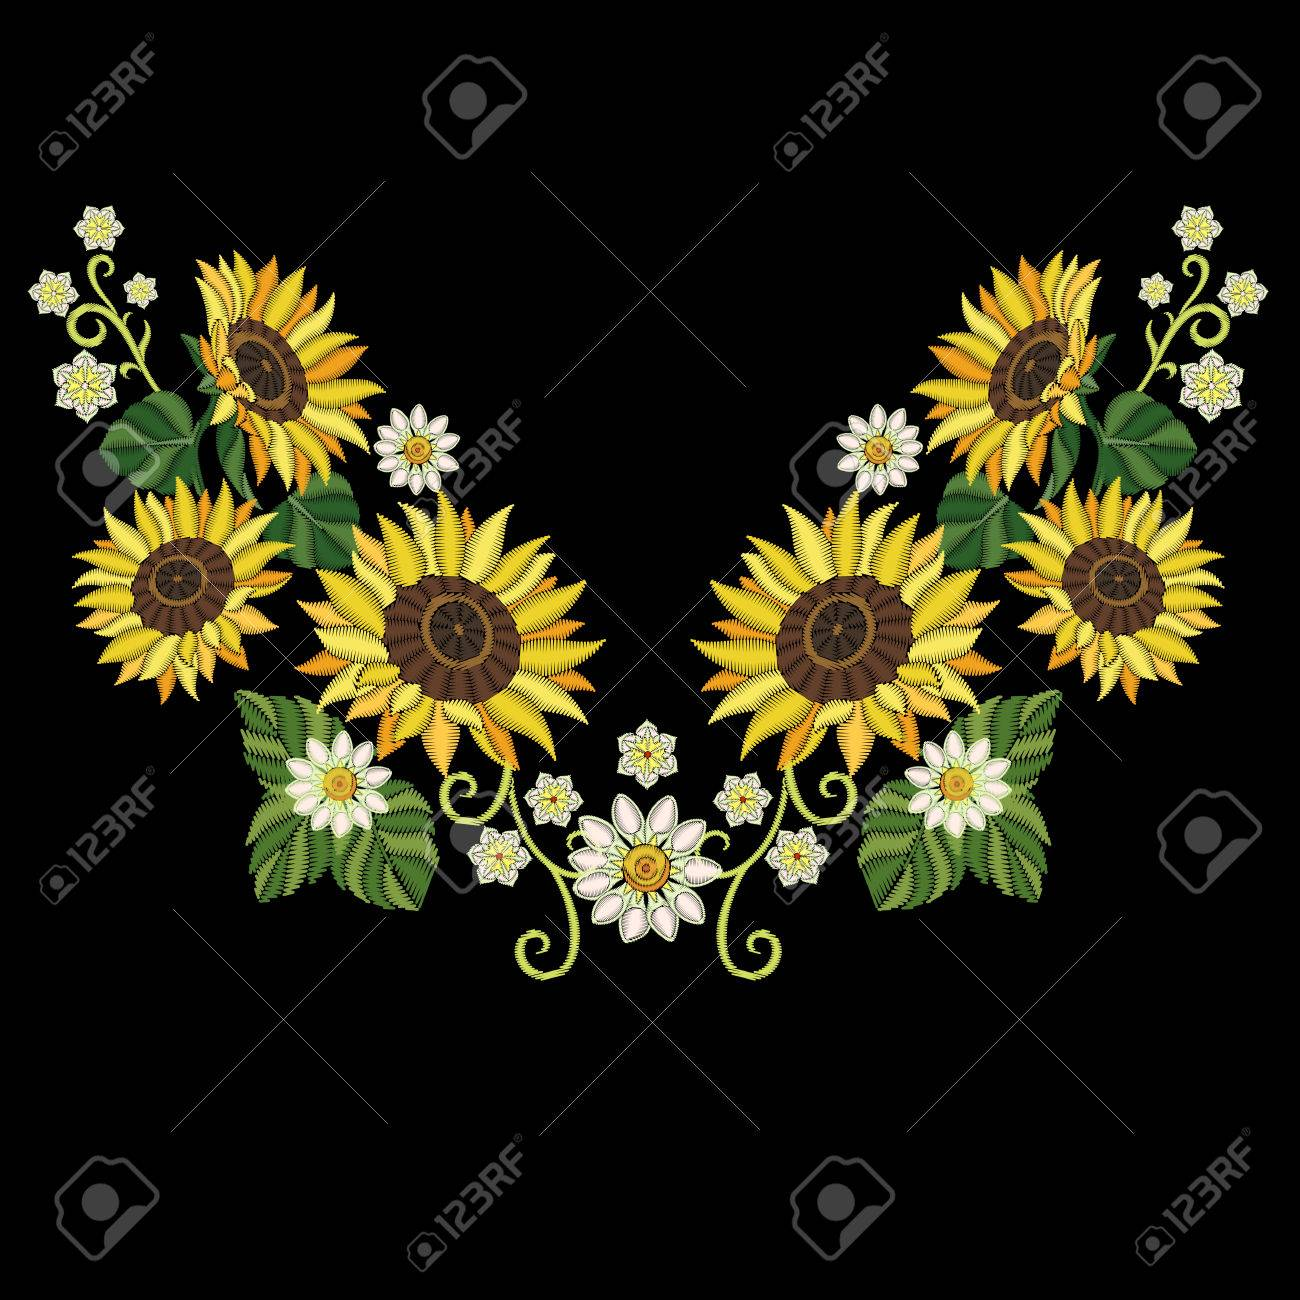 Embroidery Design Embroidered Collection Of Sunflowers And Daisy Flowers For Fabric Pattern Textile Print